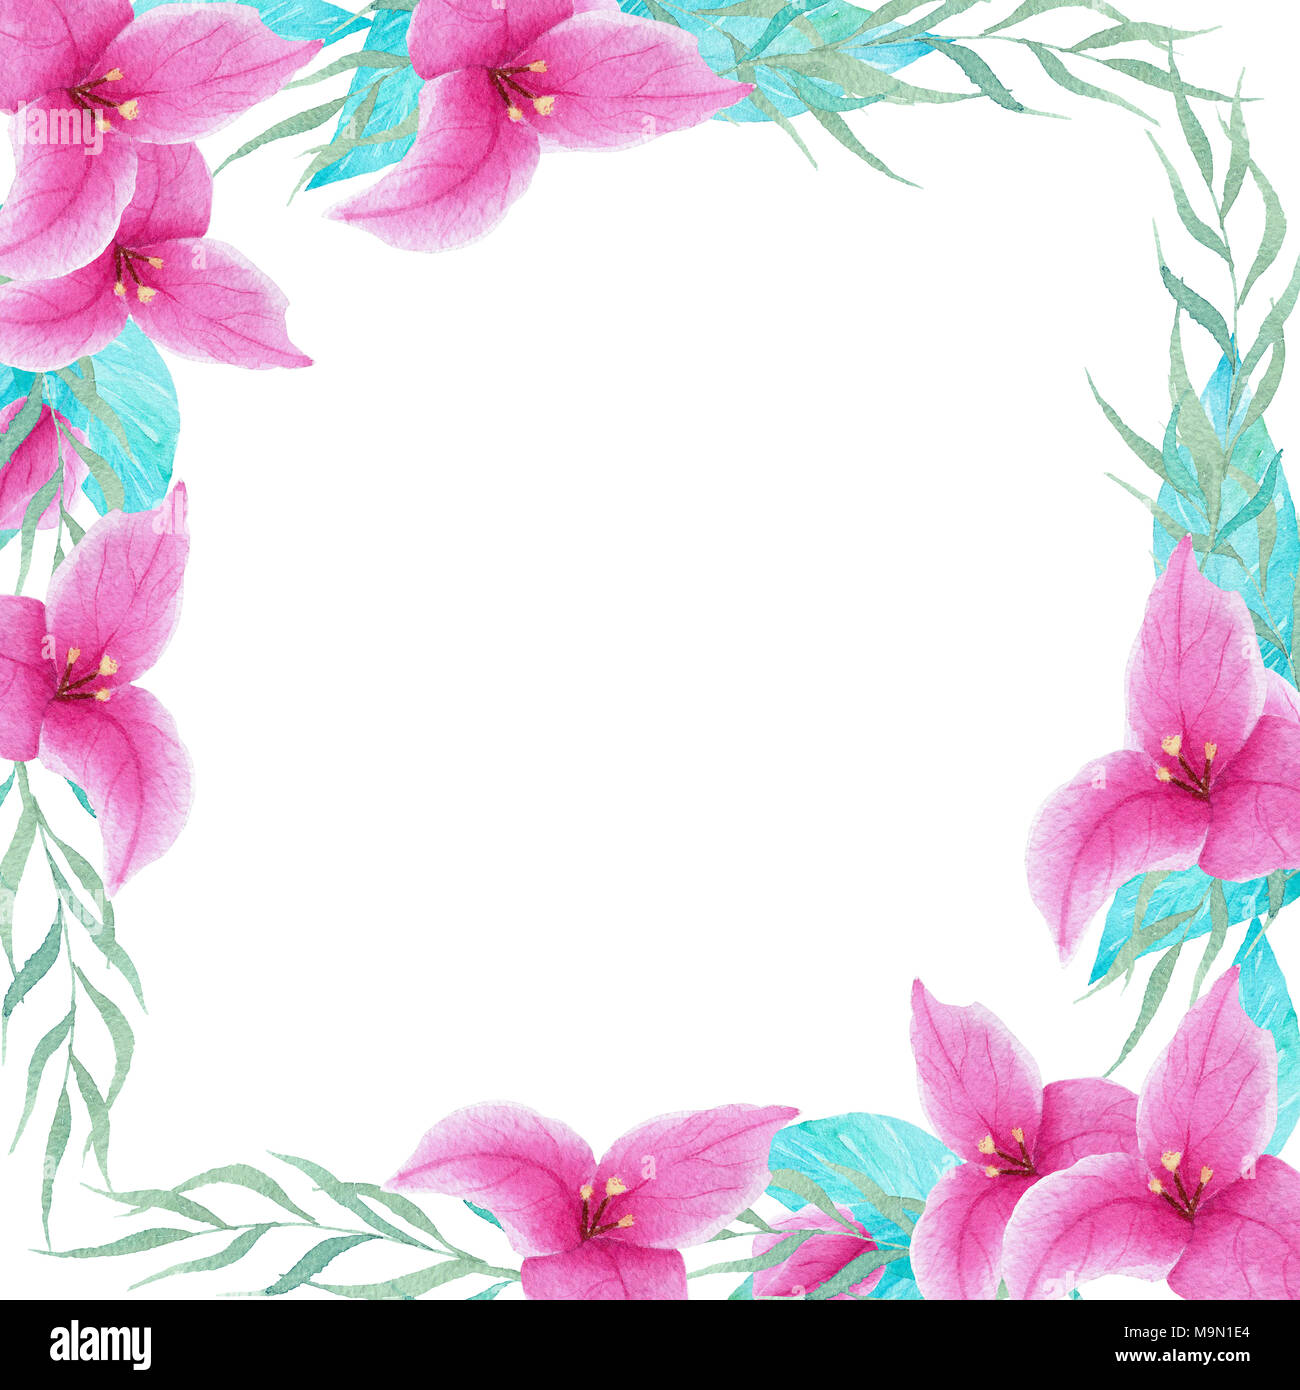 Hand Painted Watercolor Bouganvillea Flower Frame Border Perfect